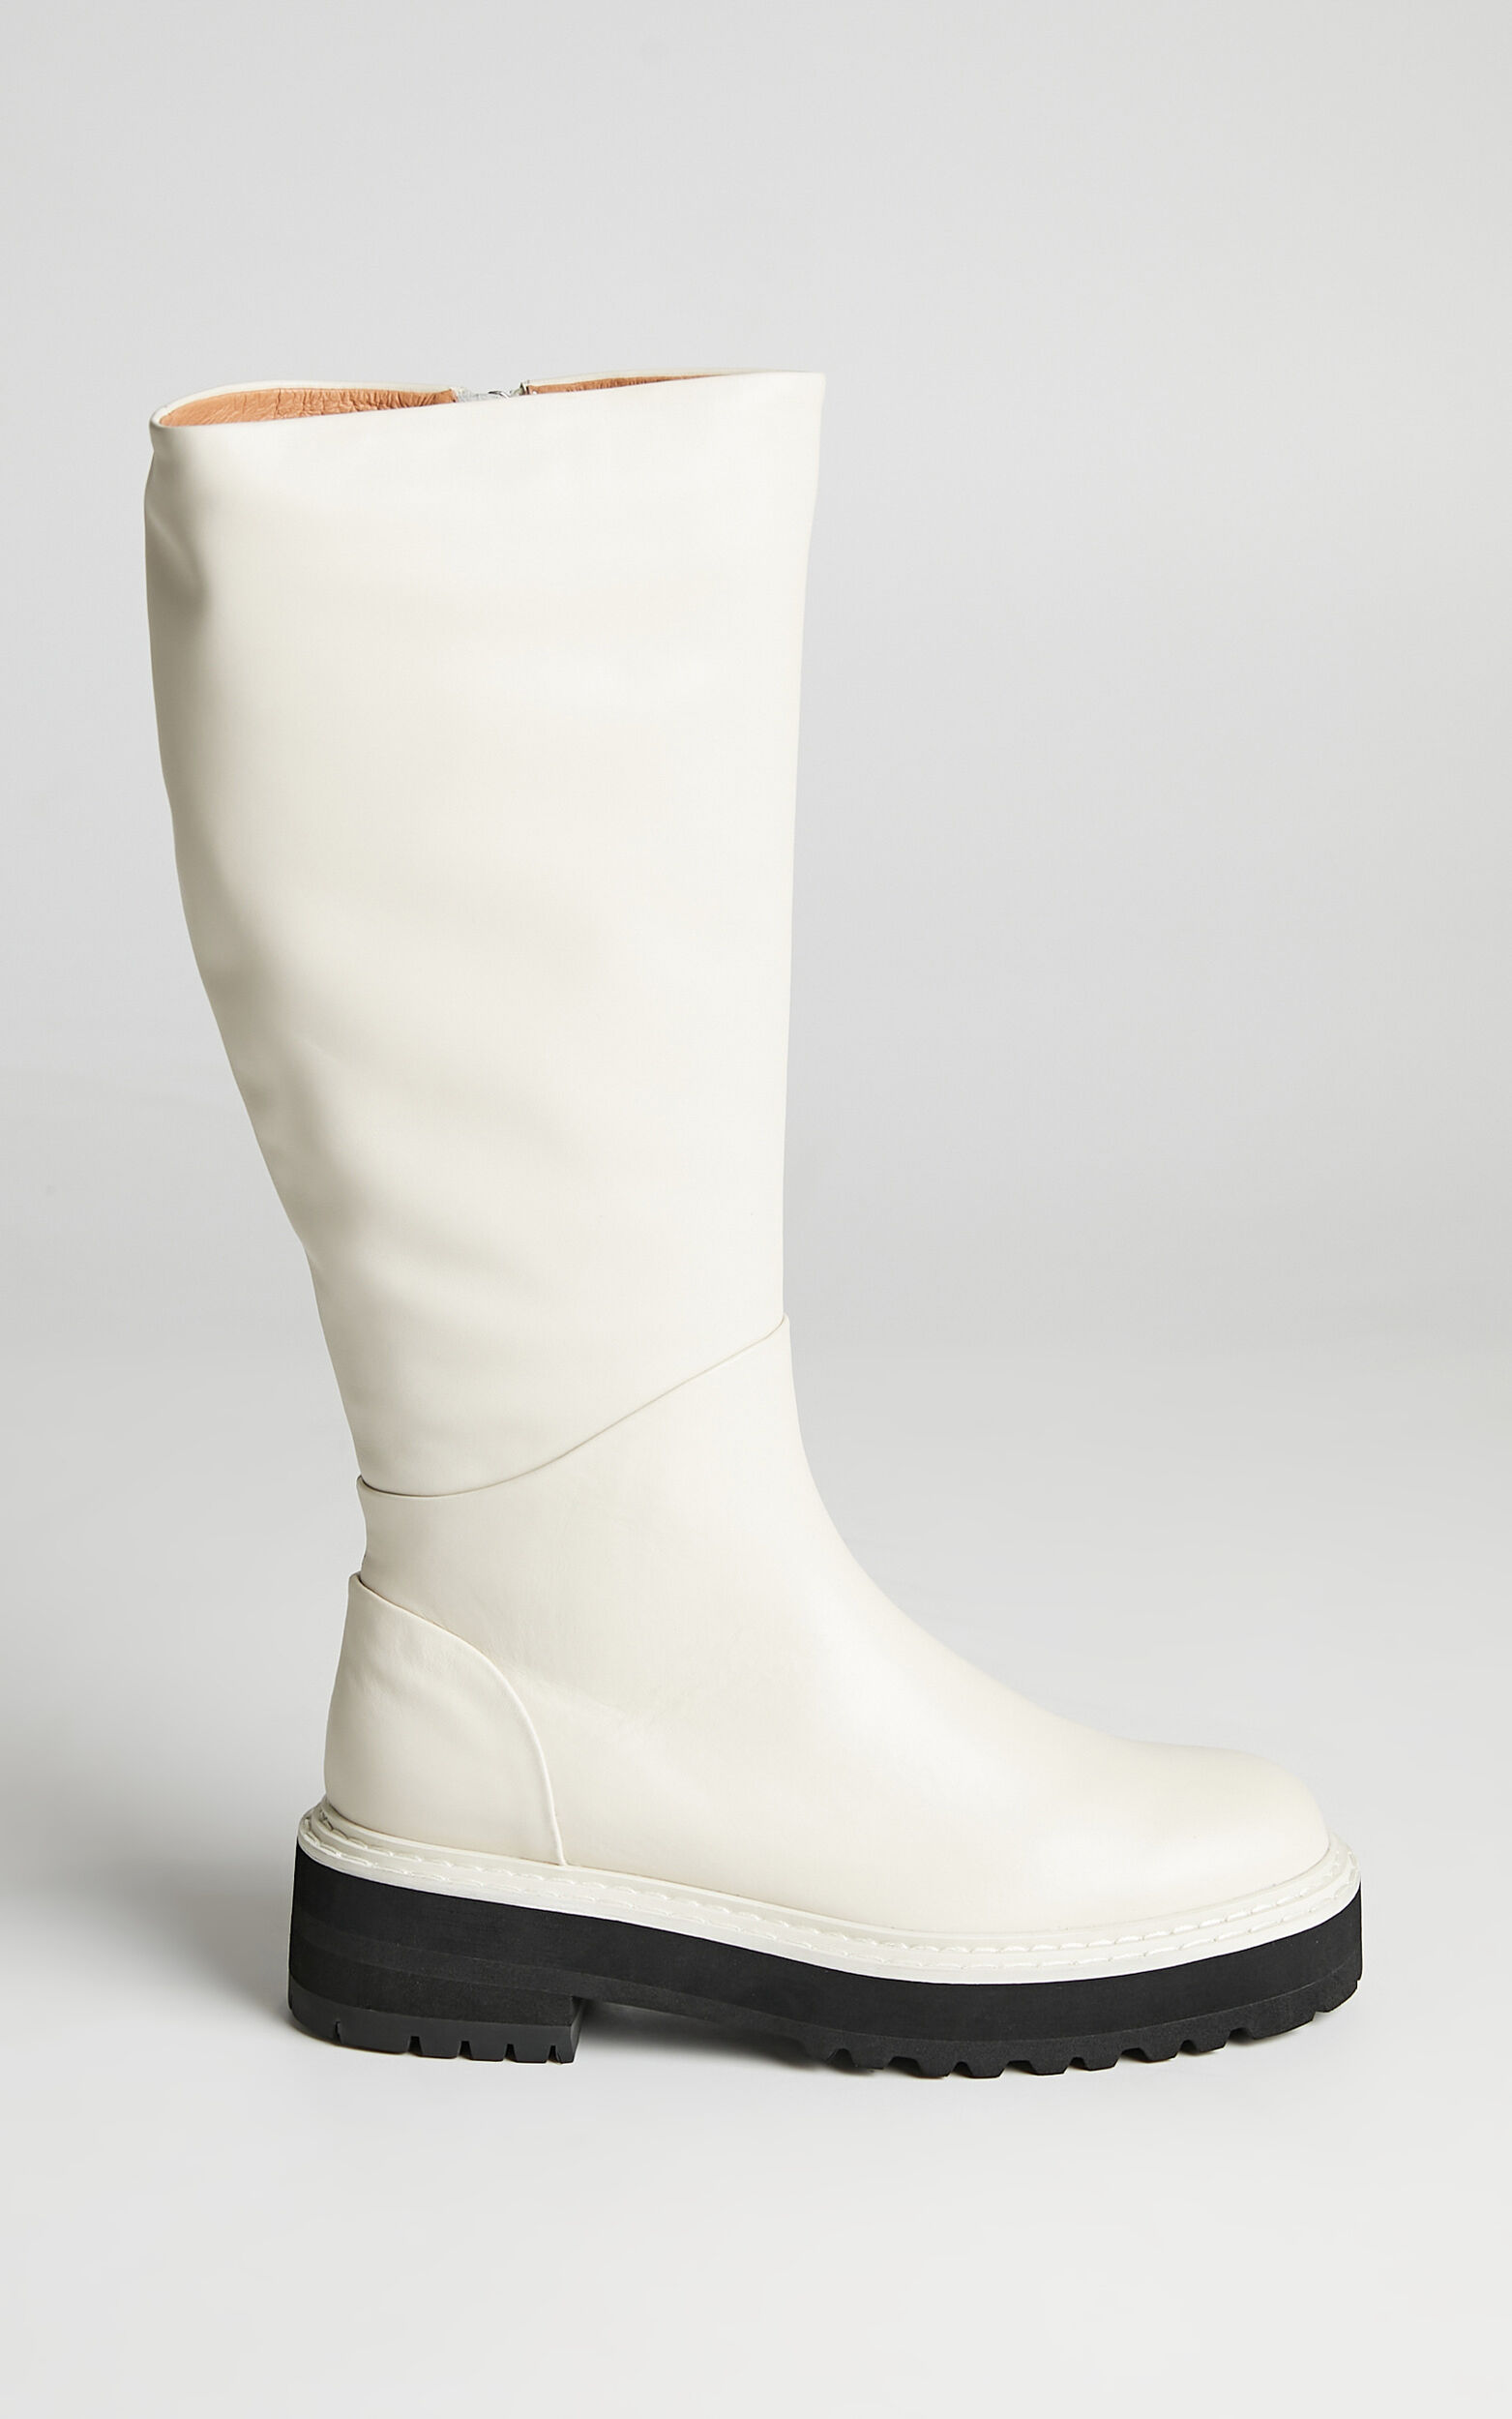 Alias Mae - Rohan Boots in Bone Leather - 10.5, WHT2, super-hi-res image number null